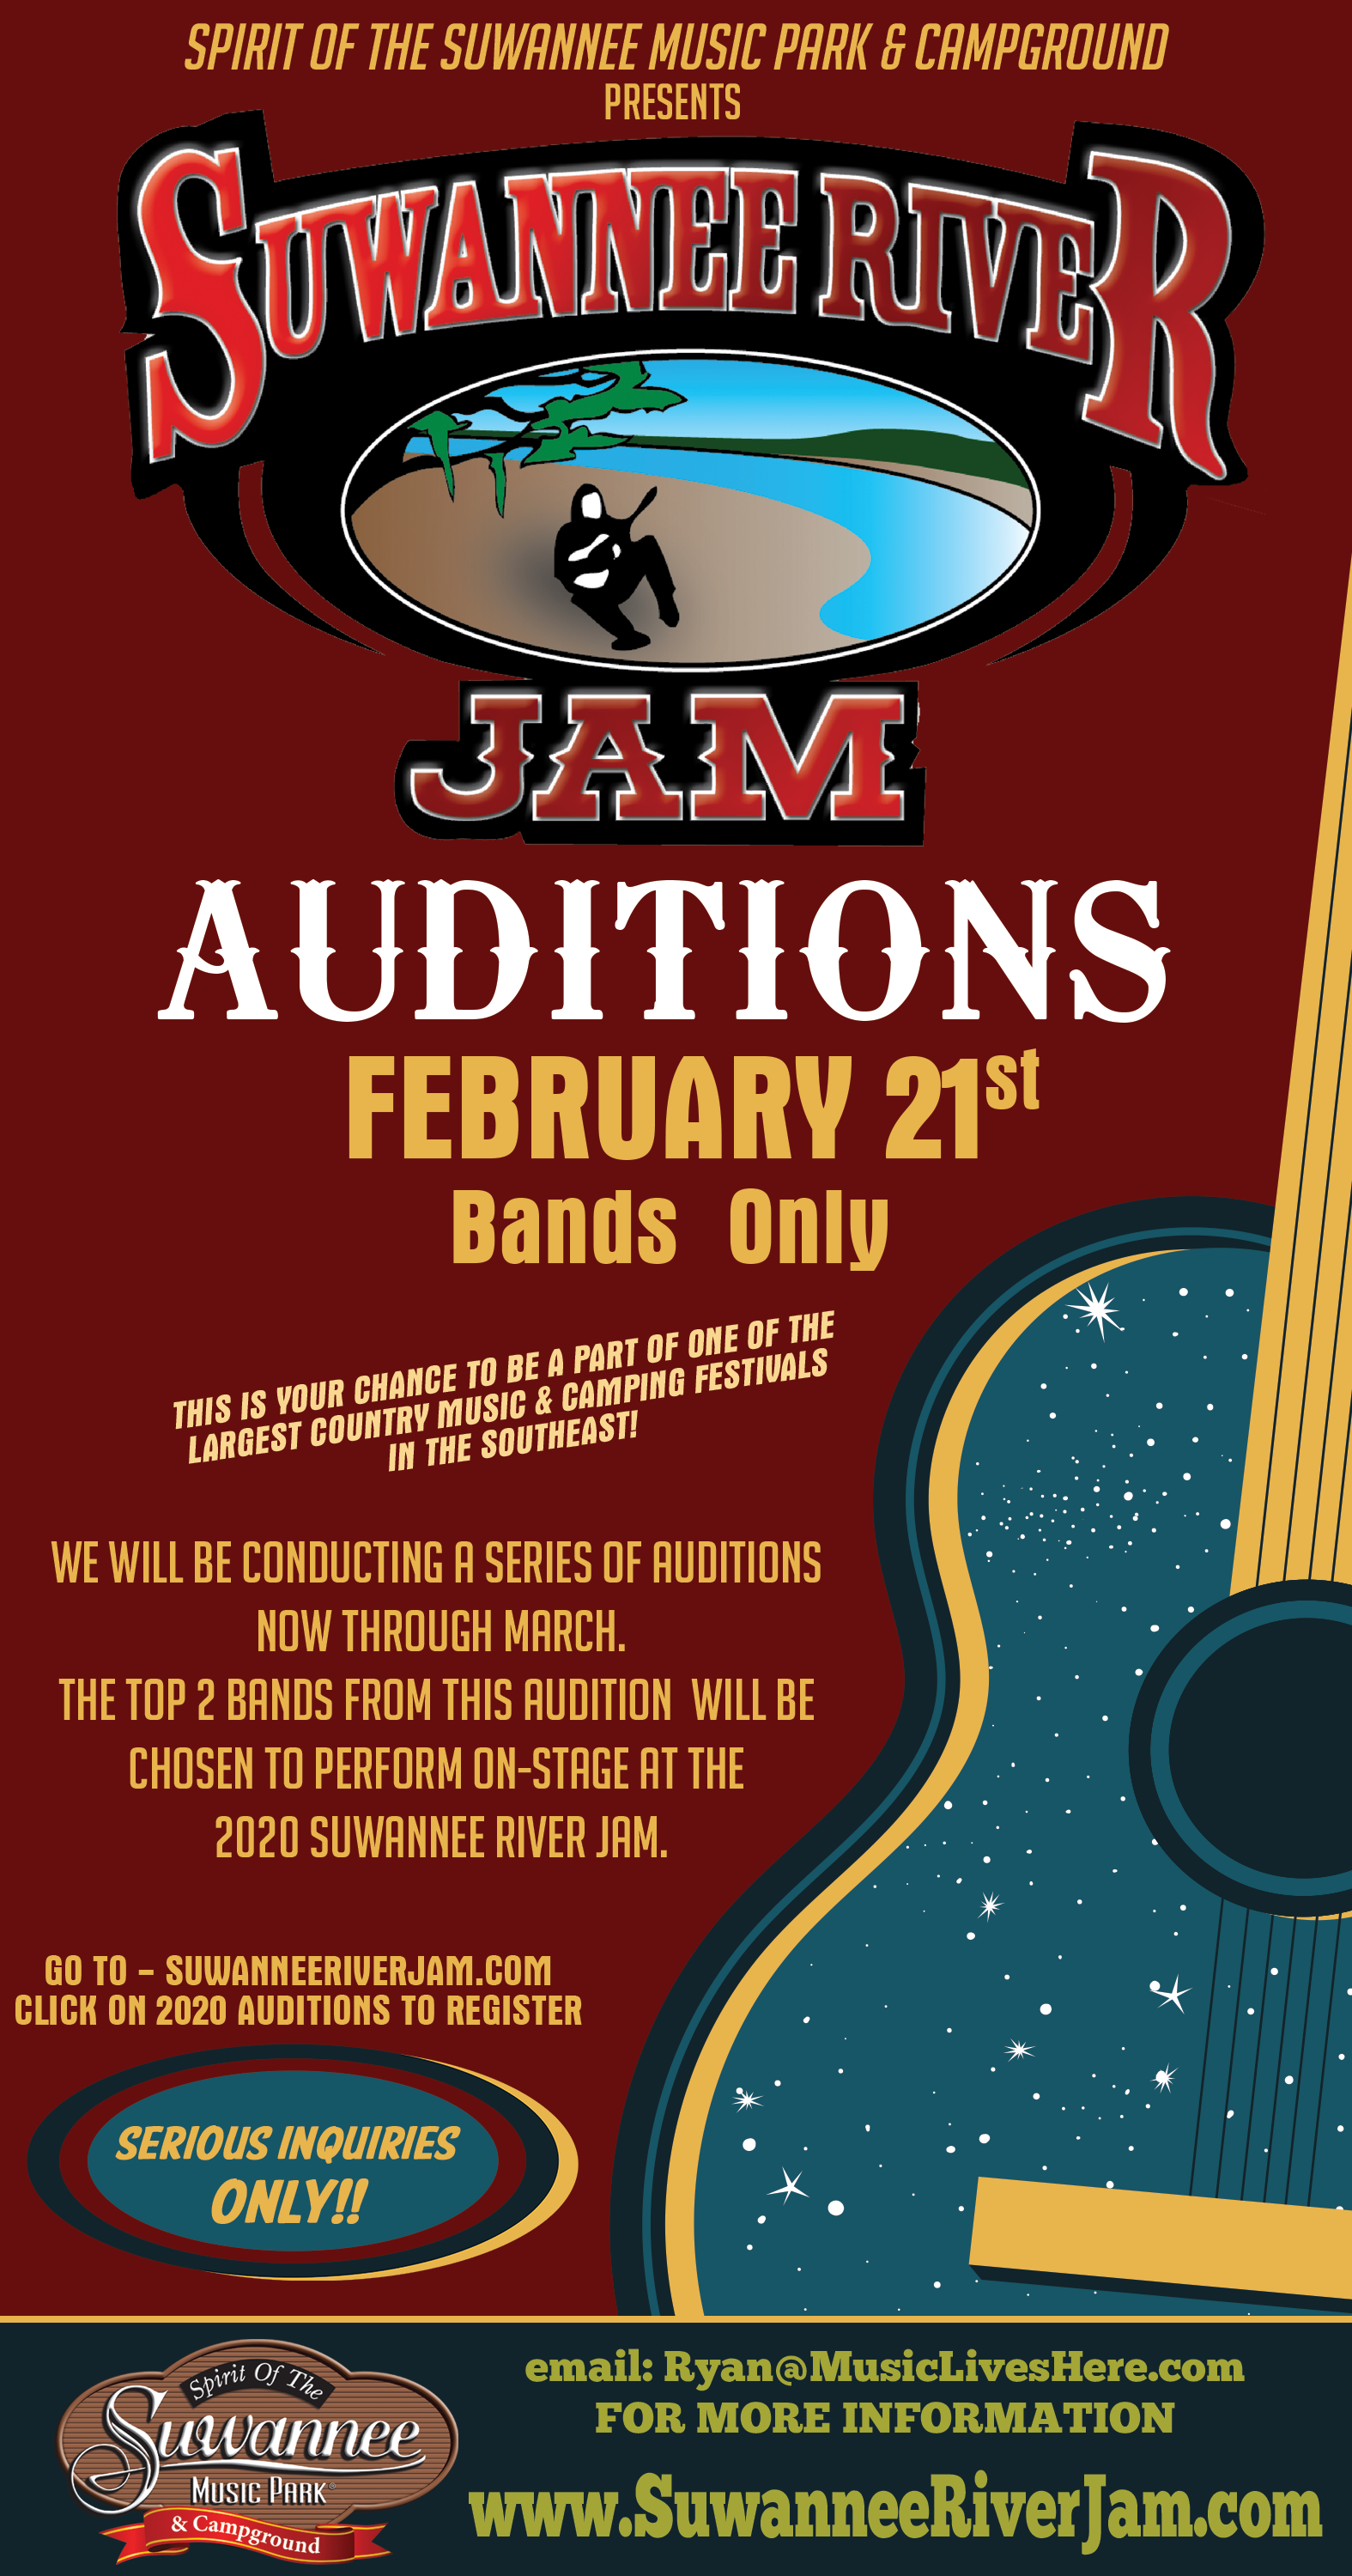 SRJam Auditions - February 21, 2020